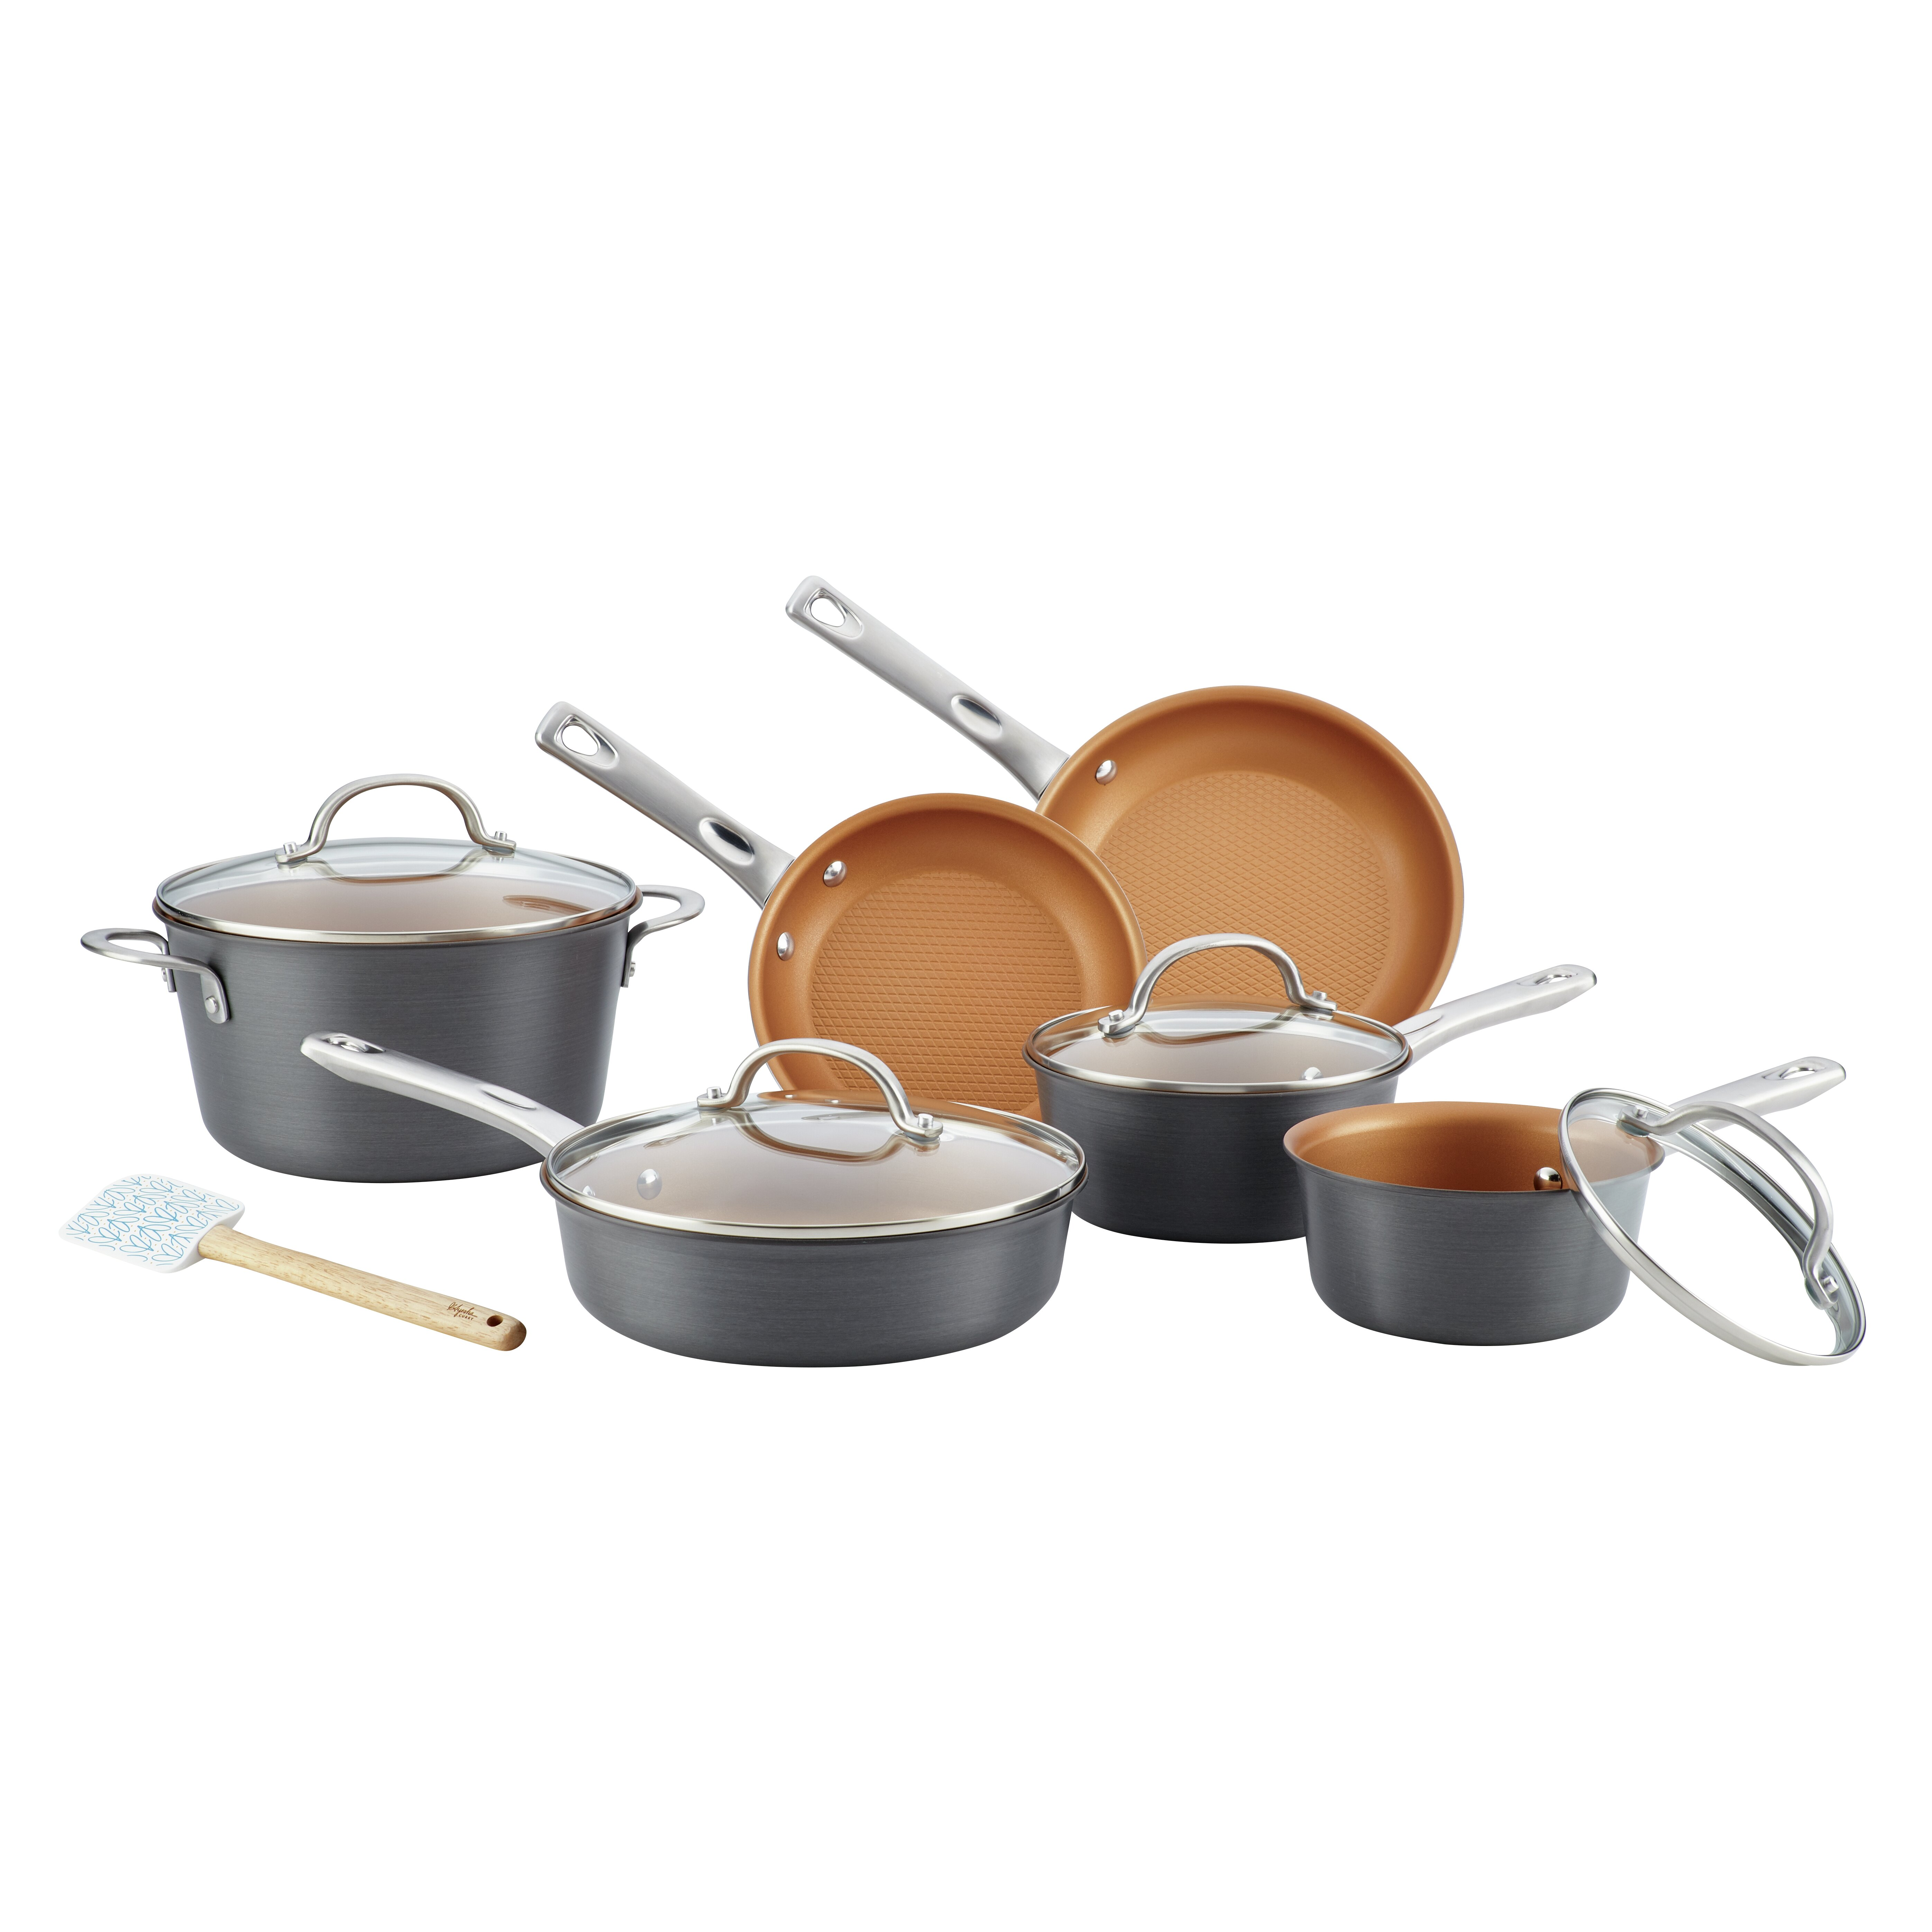 Ayesha Curry Home Collection Porcelain Enamel Nonstick Skillet 10-Inch Brown Sugar